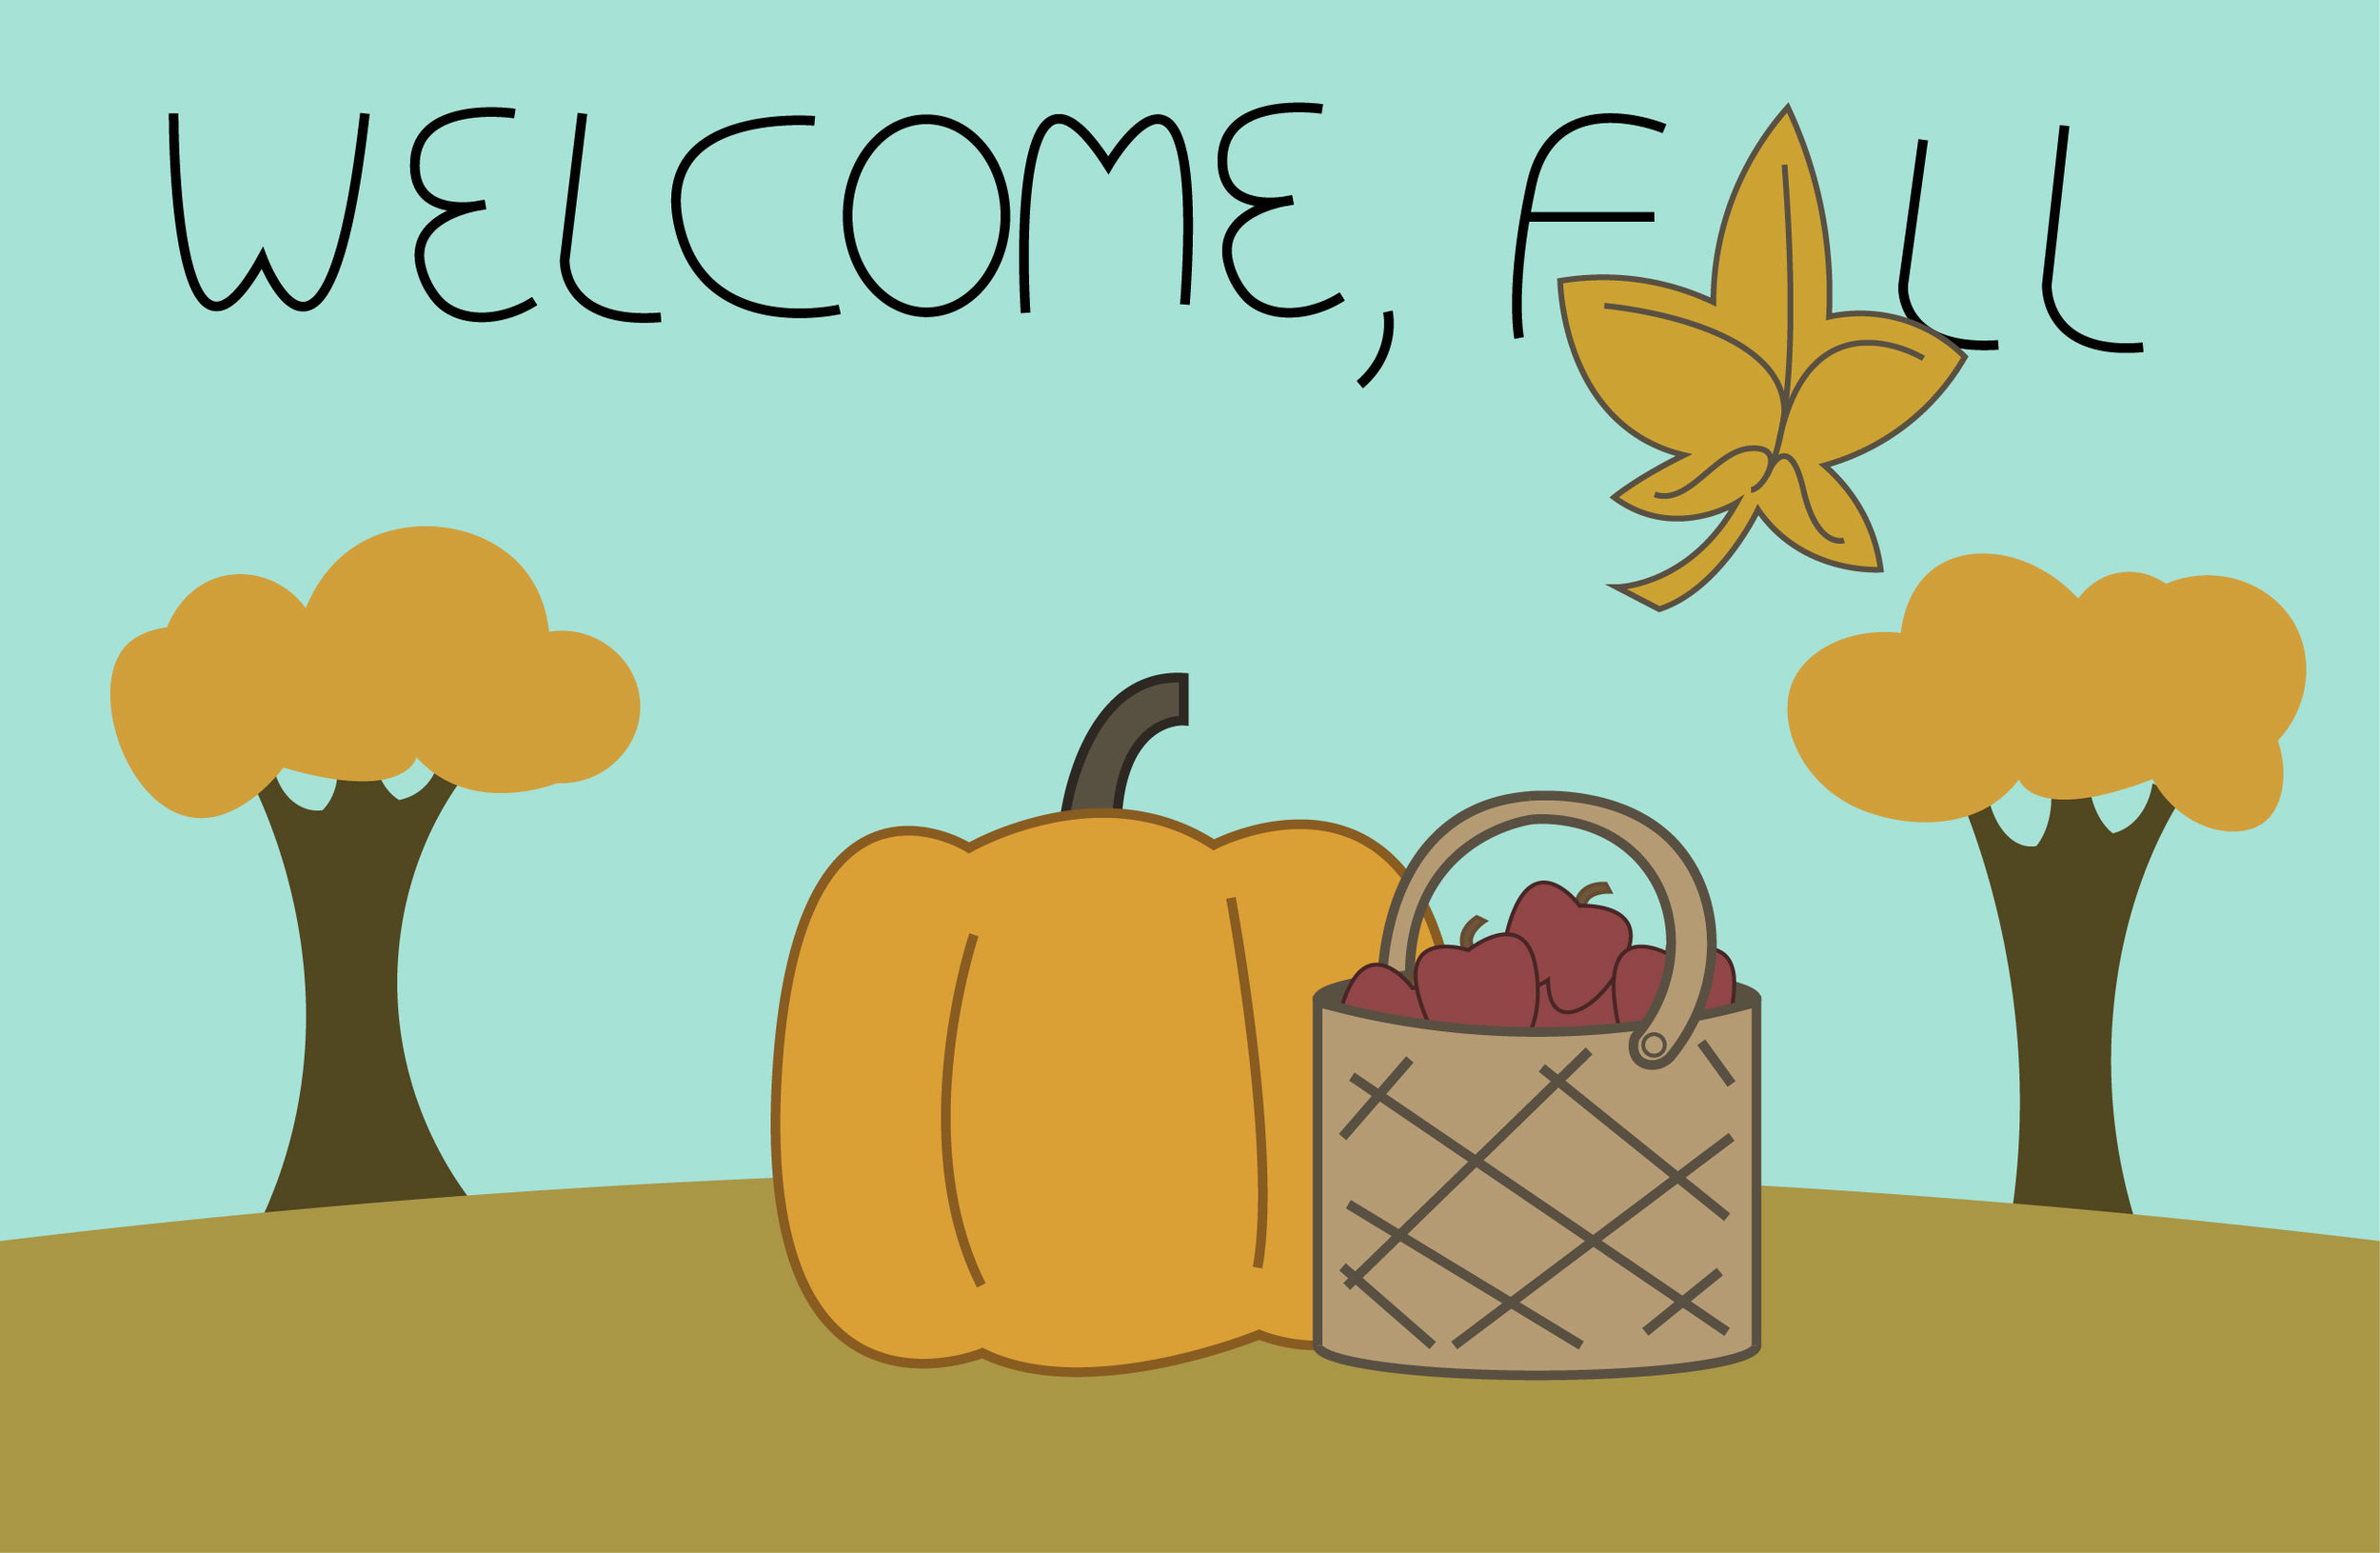 Fall is here. Get ready for sweaters, fall colors and midterms.